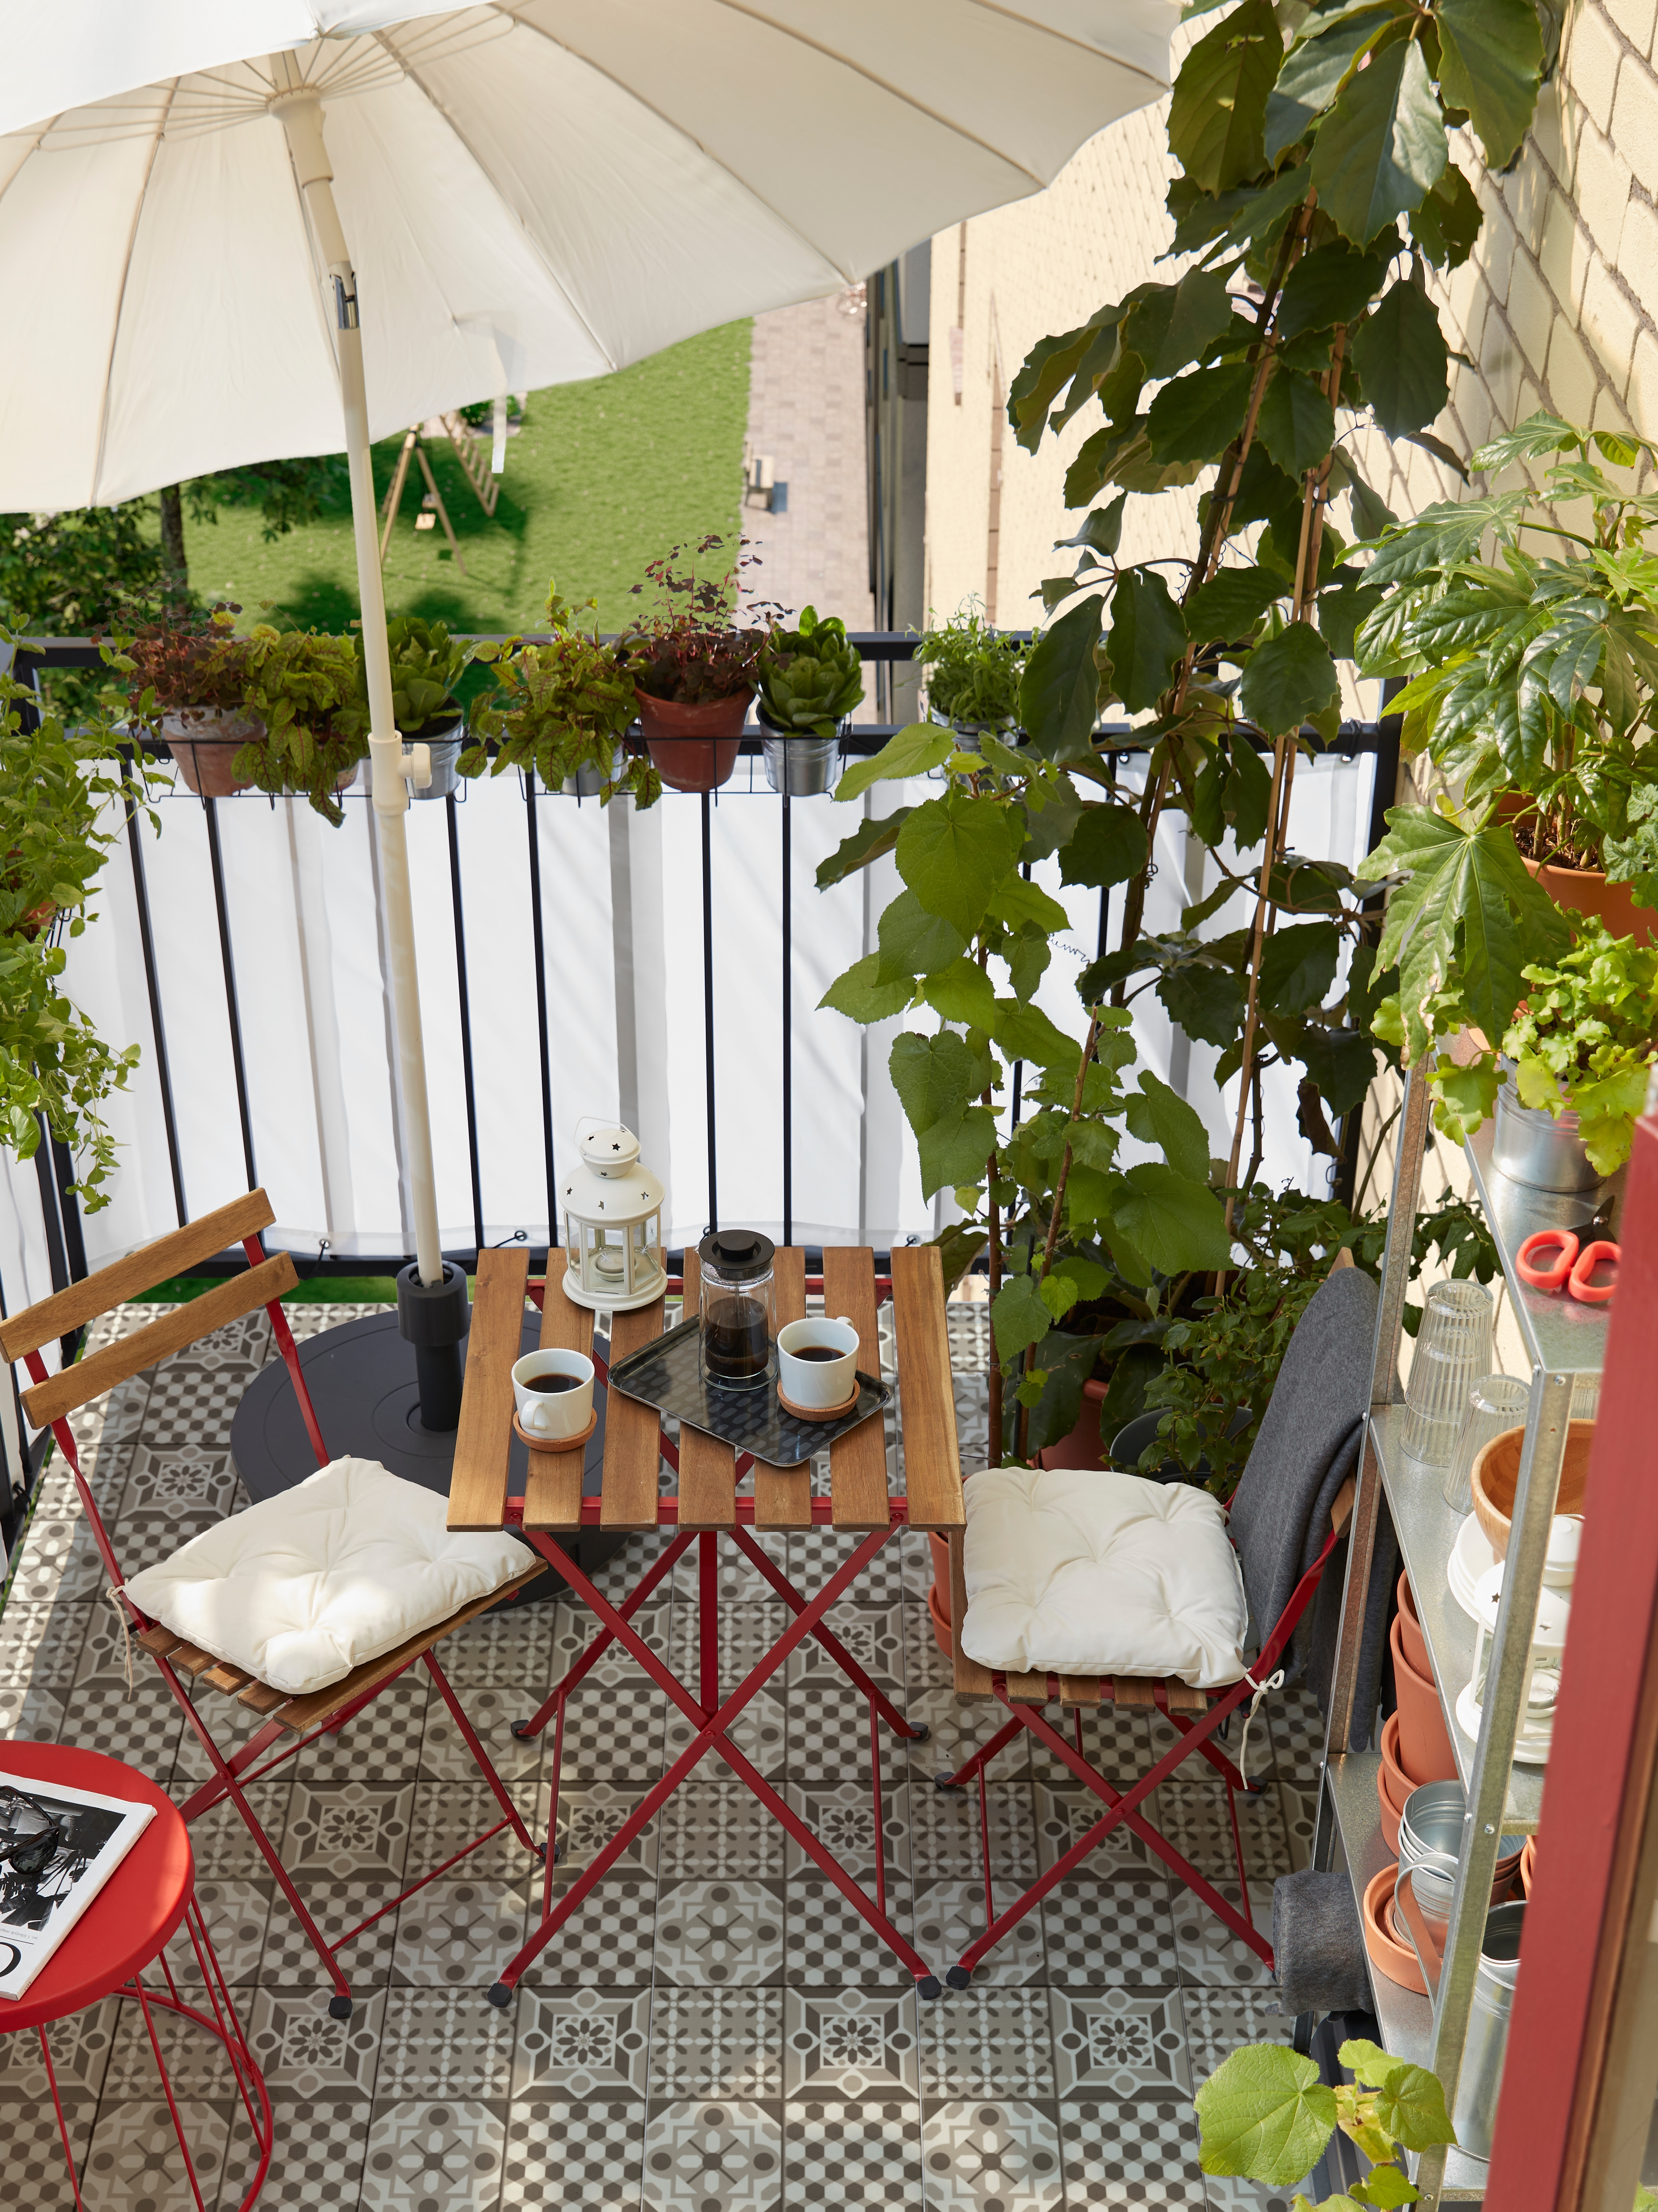 A small balcony with lots of herbs and plants, a red stool, a shelving unit, a white parasol and two chairs and a table.